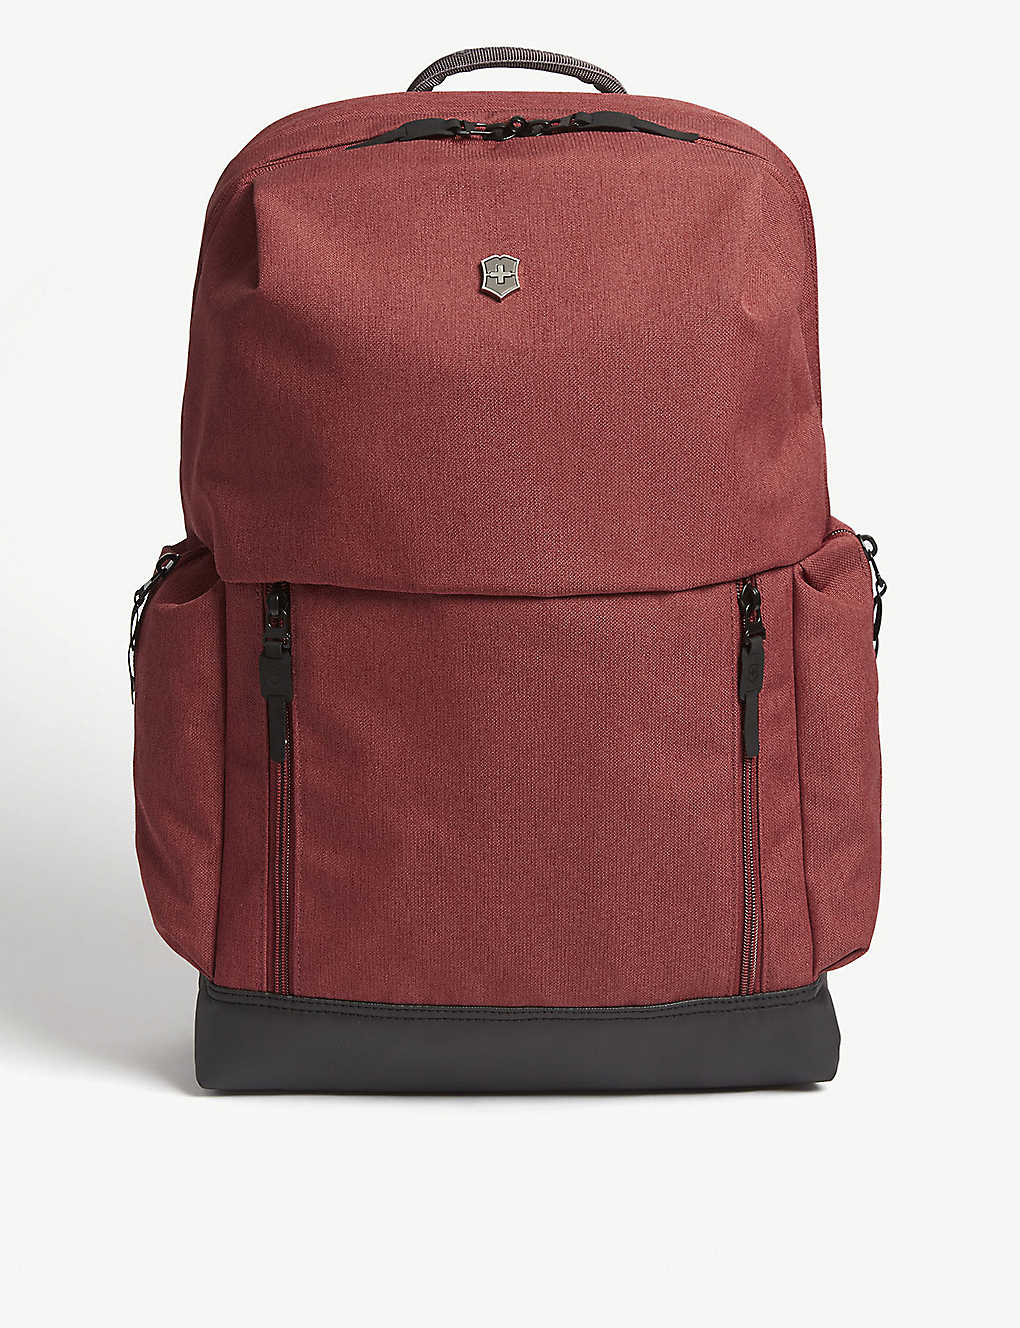 VICTORINOX: Altmont Classic Deluxe Laptop Backpack